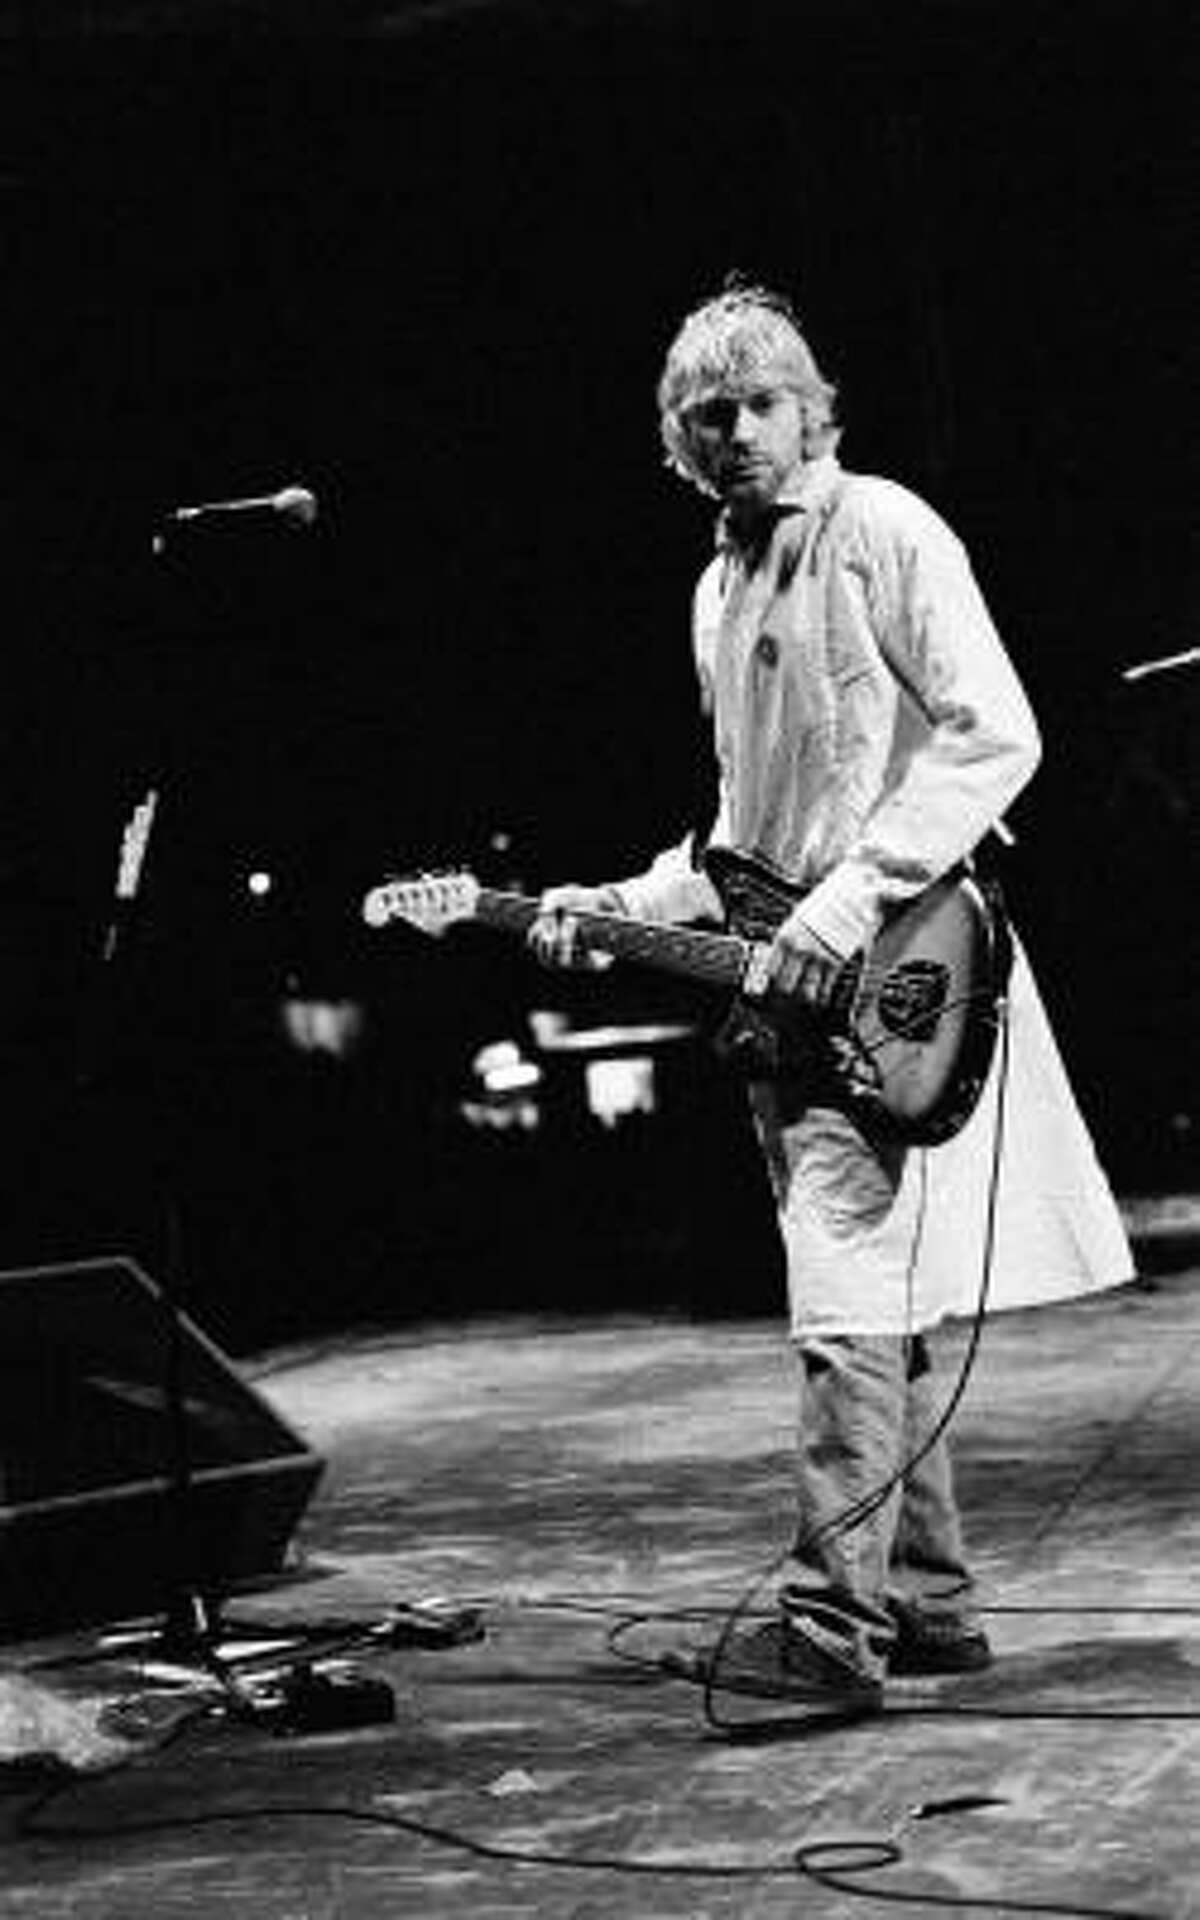 Kurt Cobain and Nirvana didn't release a live album while the singer/guitarist was still alive, but three have come out since his death in 1994.